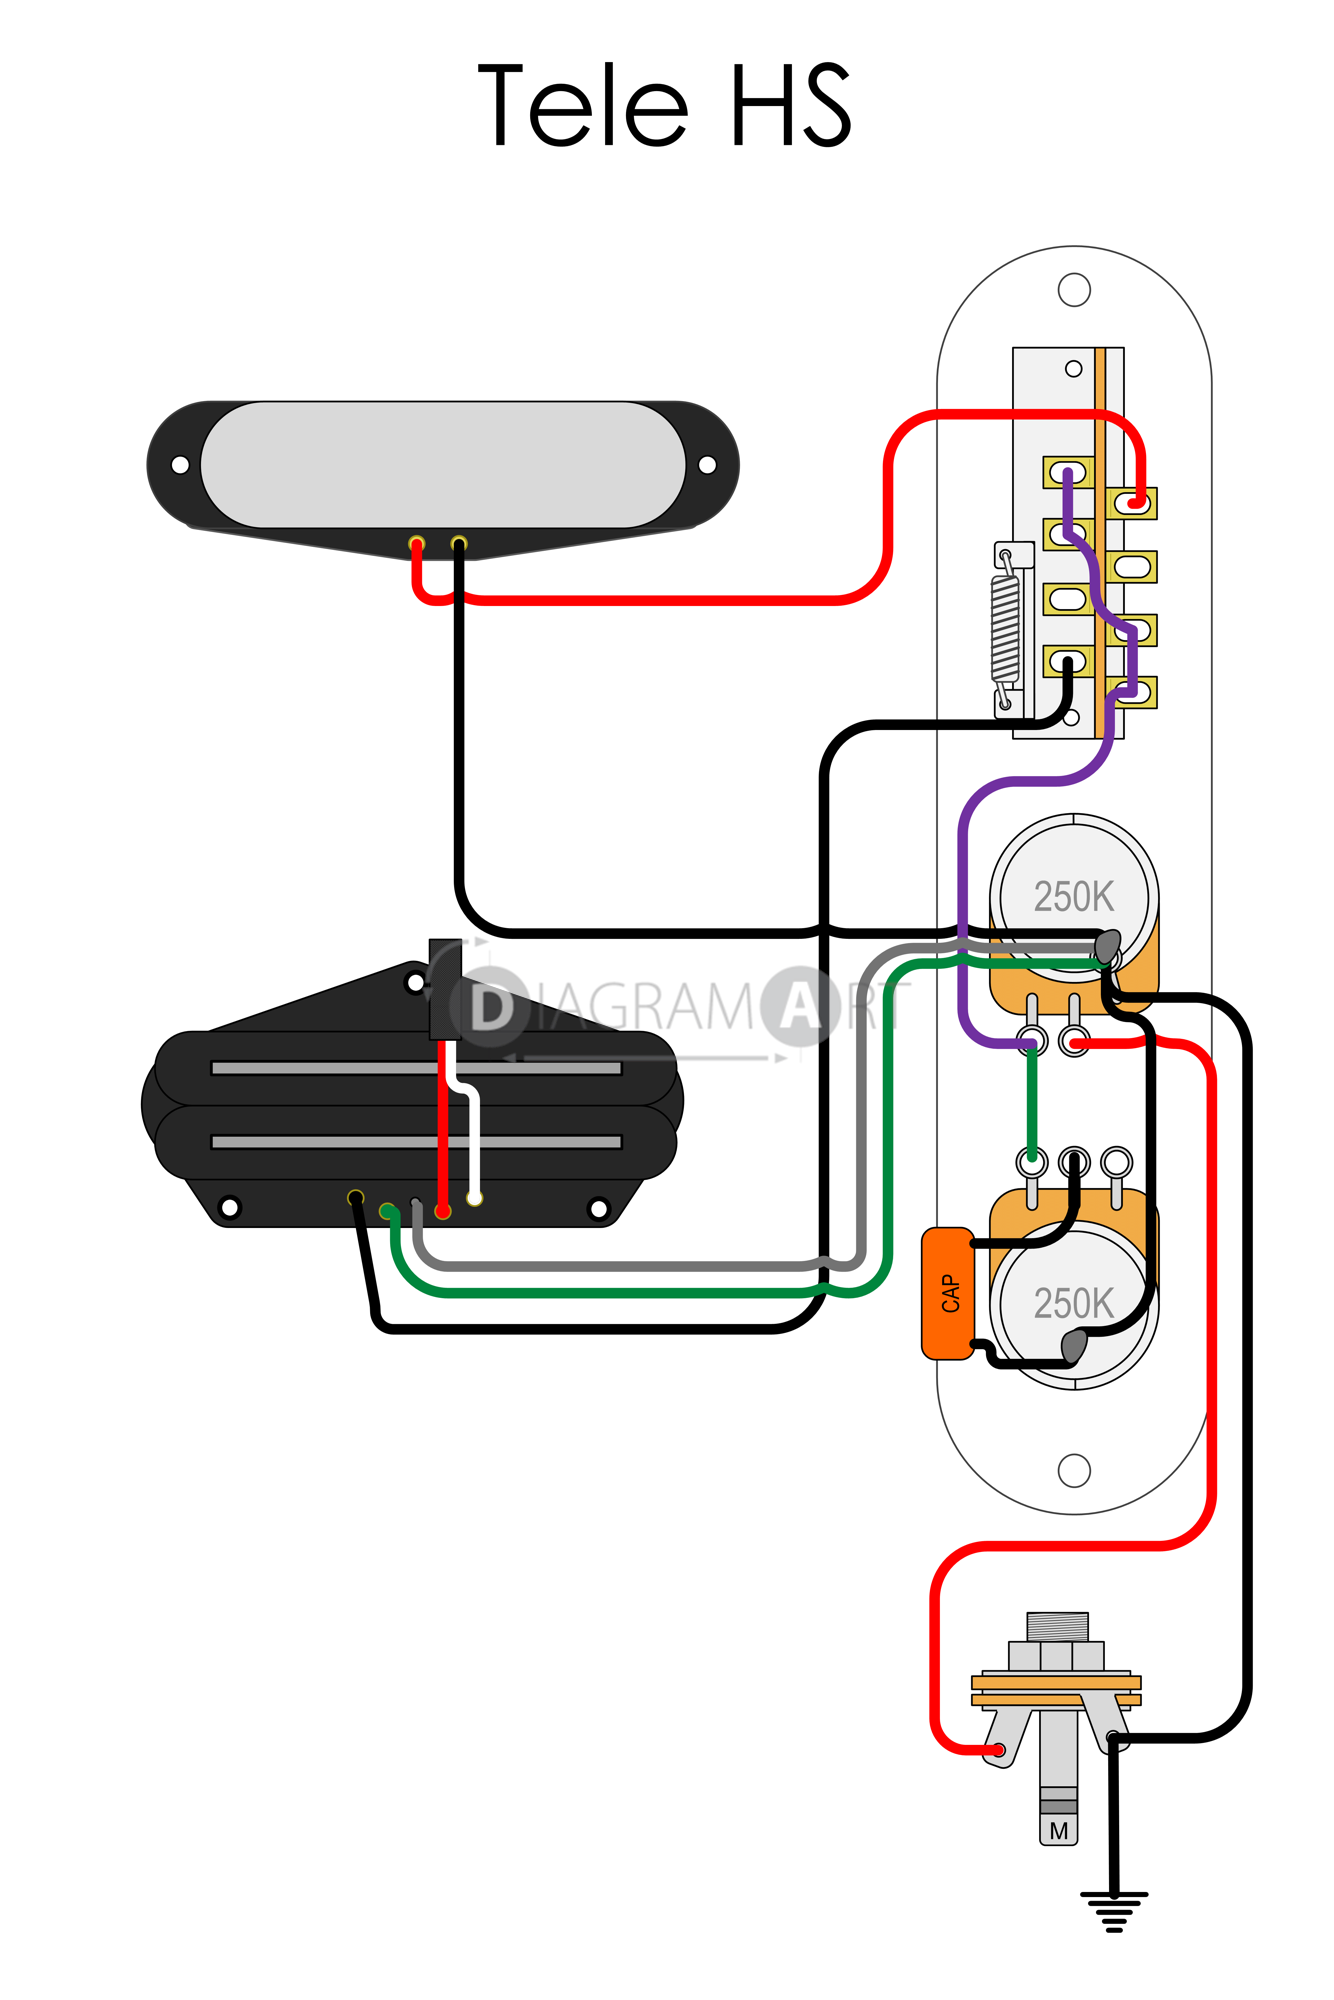 Electric Guitar Wiring: Tele HS [Electric Circuit] , Free Sketch -  DIAGRAMART AUTHOR